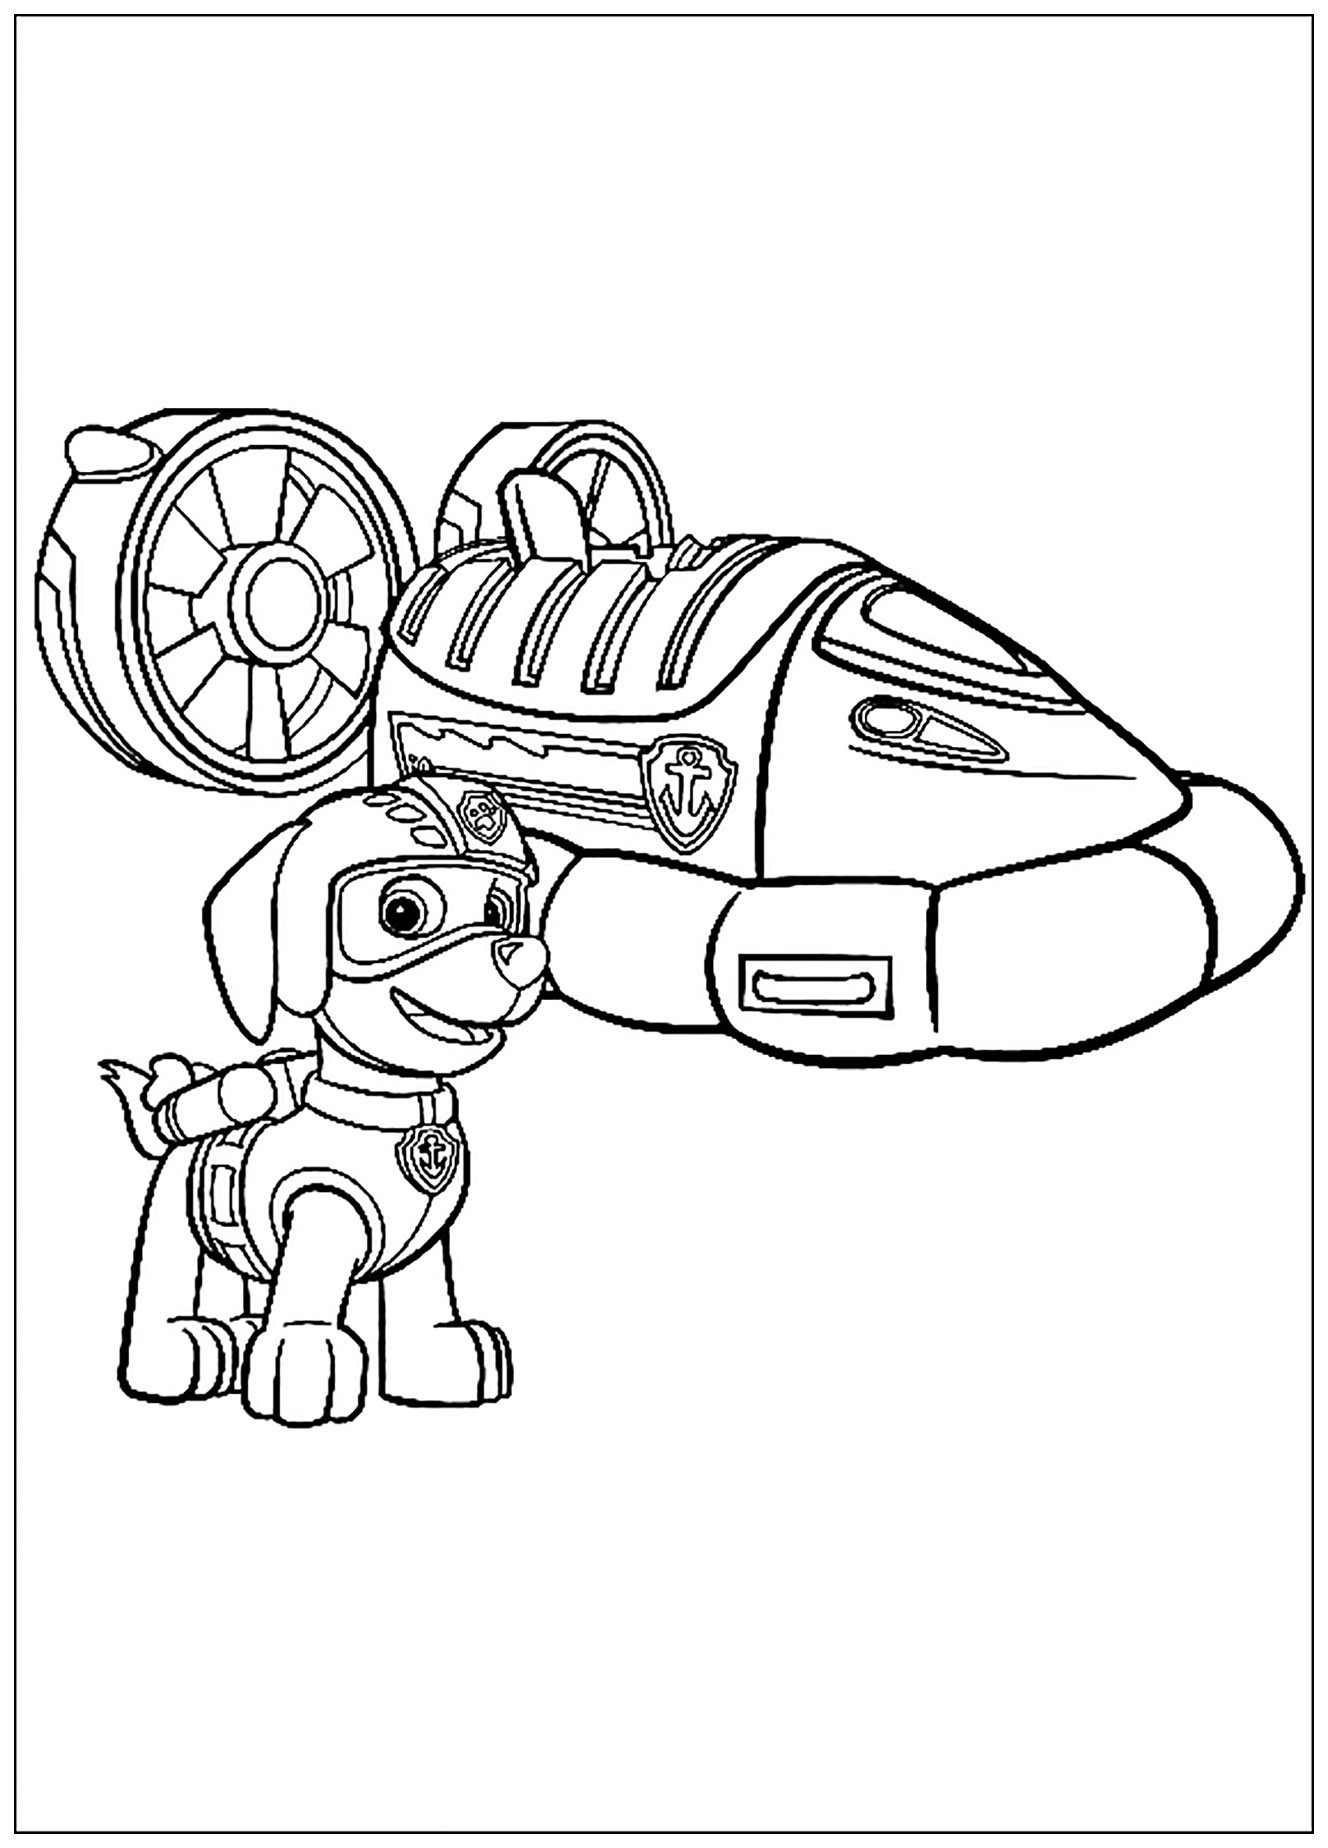 Malvorlagen Tv: Paw Patrol Kids Coloring Pages